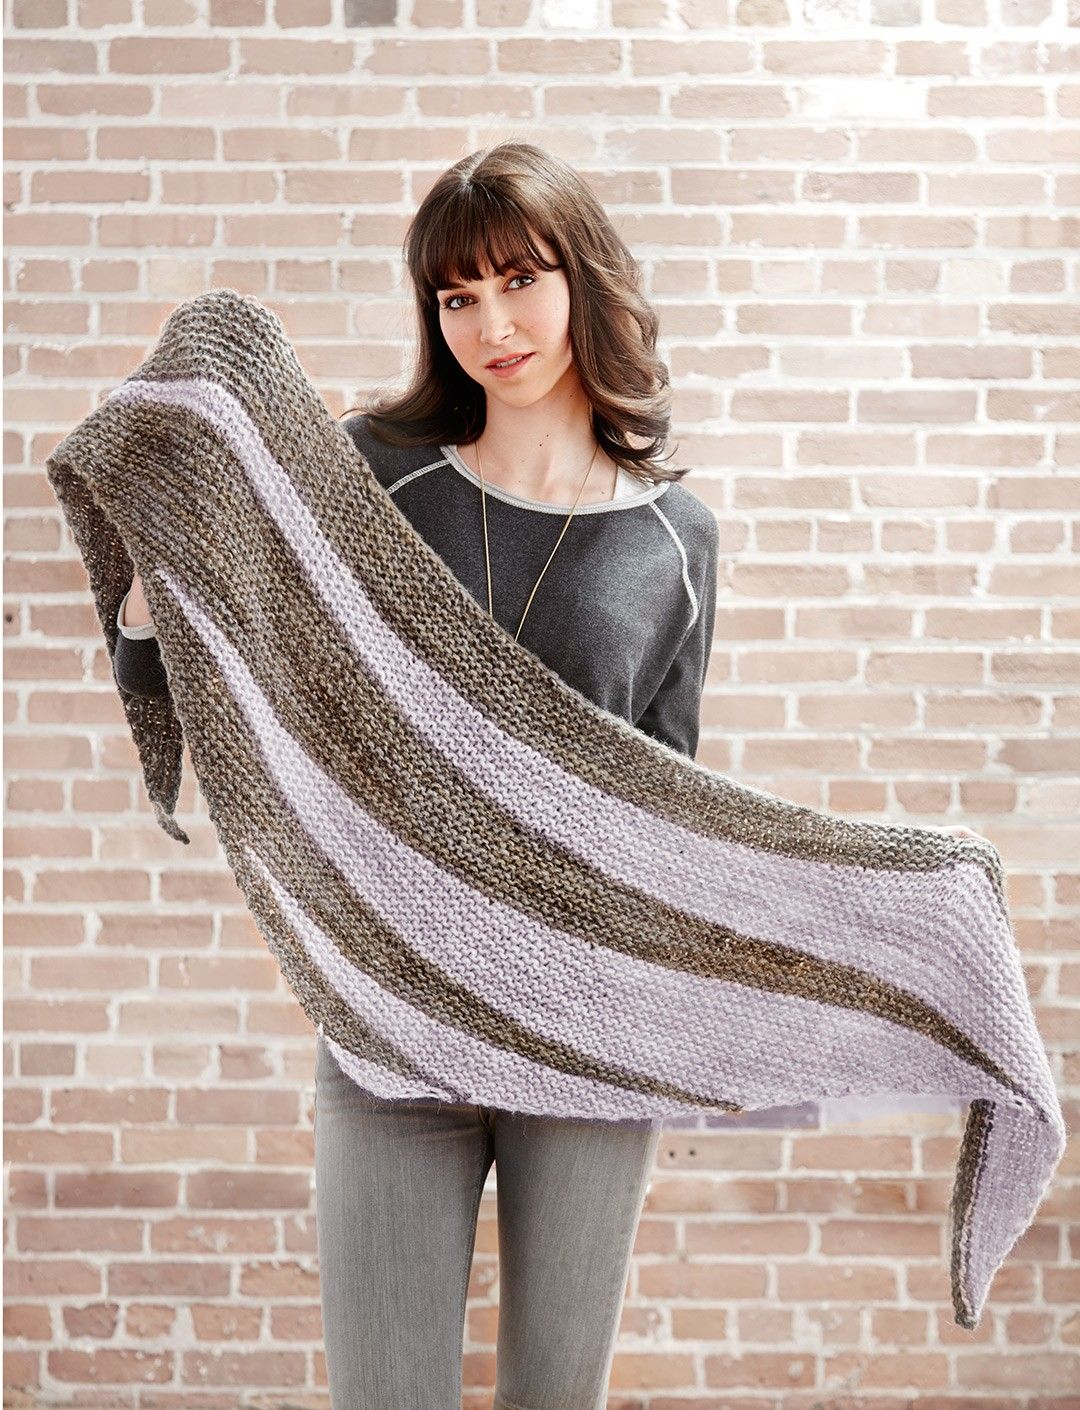 Free pattern friday knit shawl pattern from yarnspirations free pattern friday knit shawl pattern from yarnspirations bankloansurffo Image collections